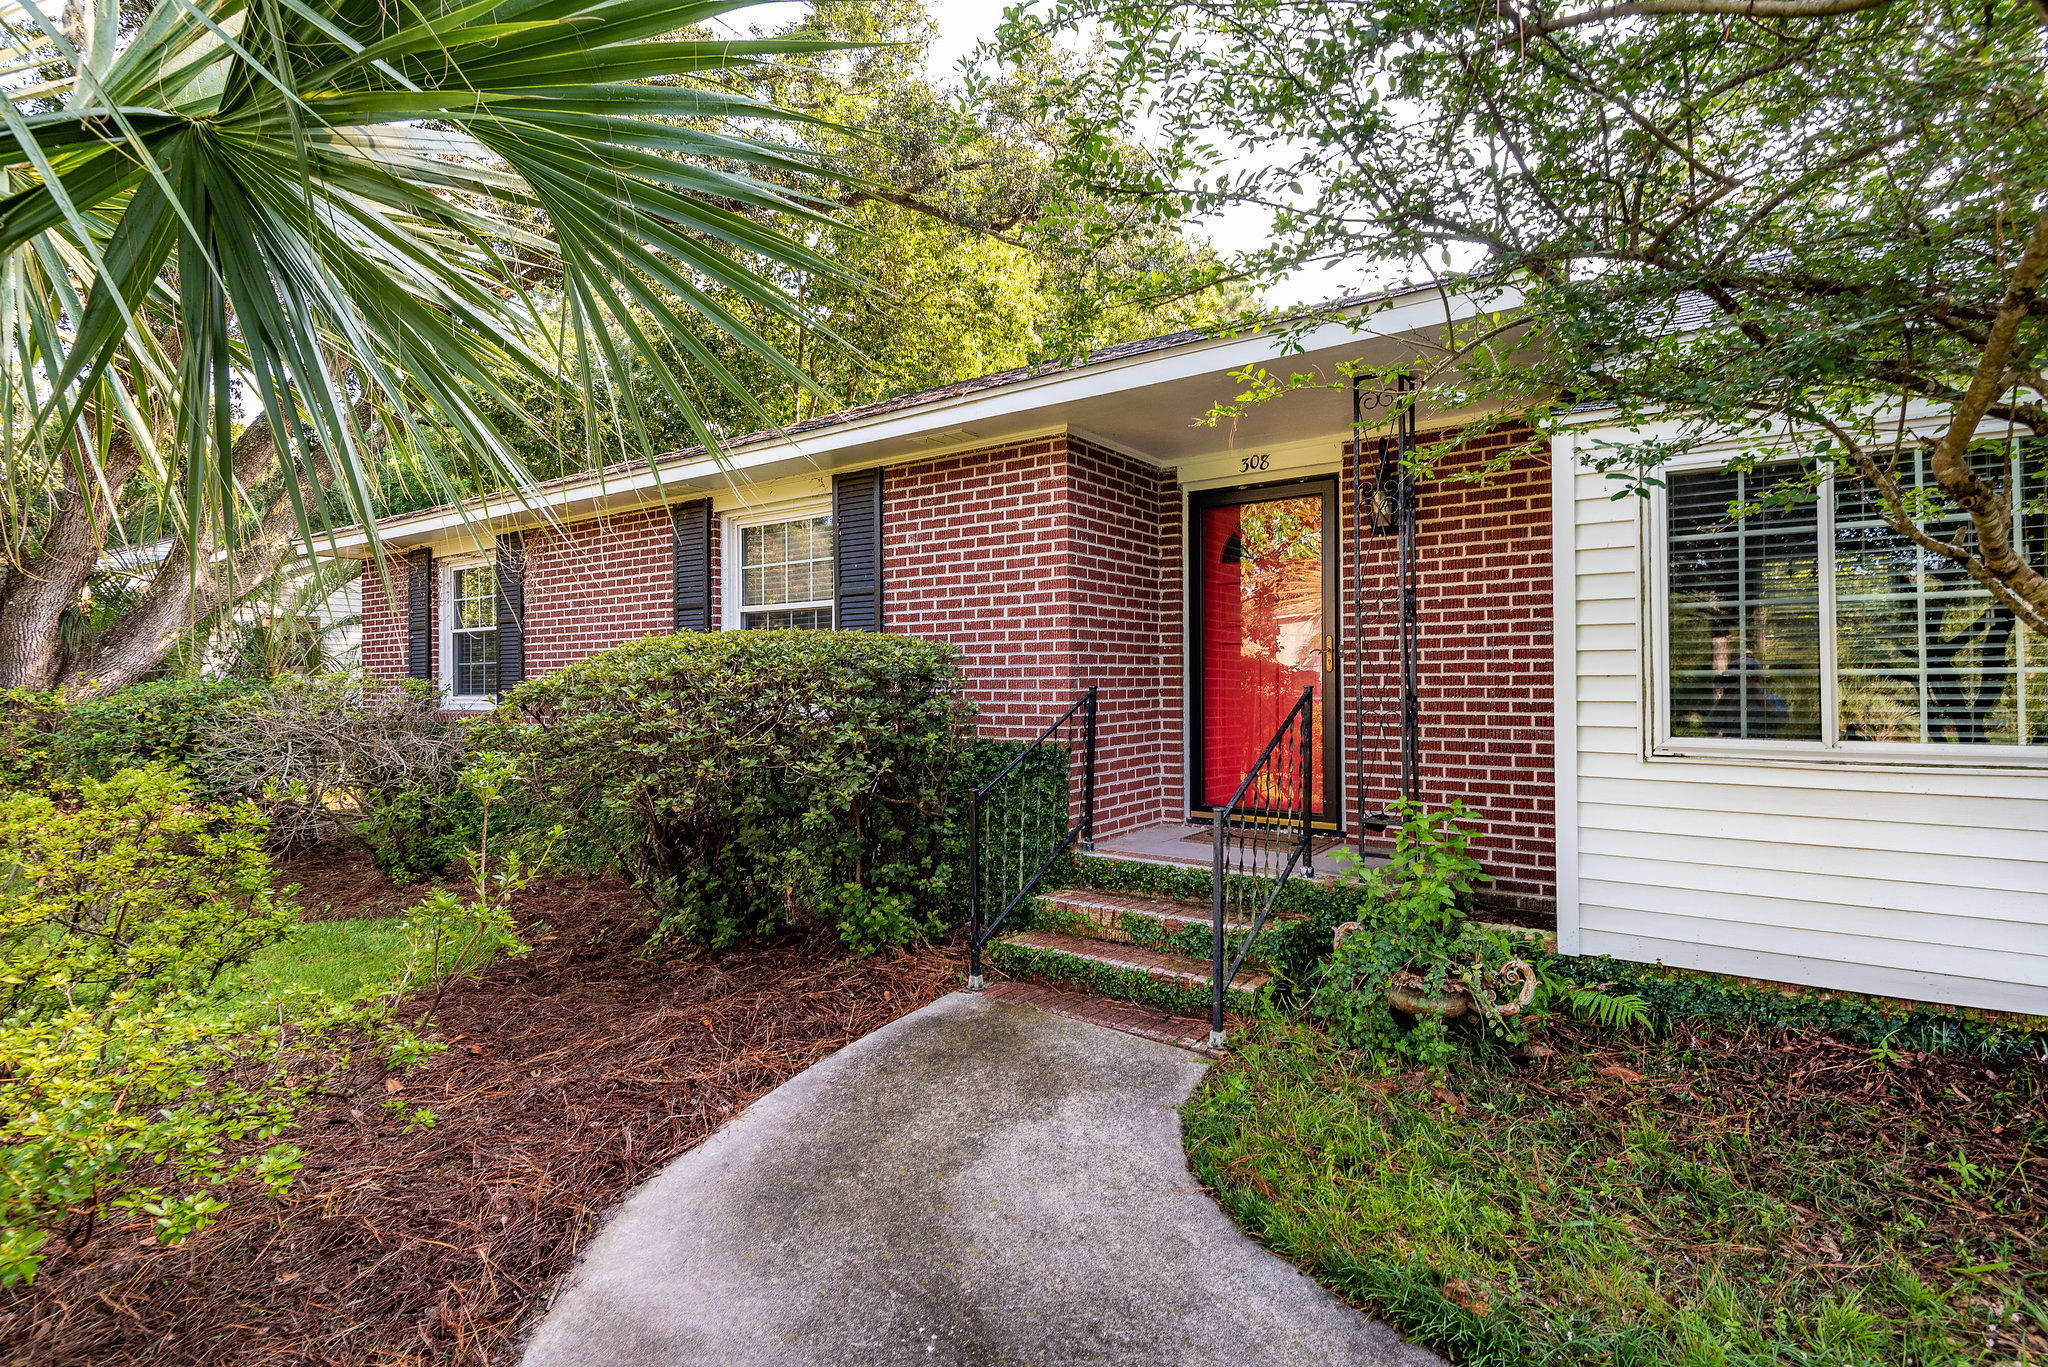 Wappoo Shores Homes For Sale - 308 Jean, Charleston, SC - 0